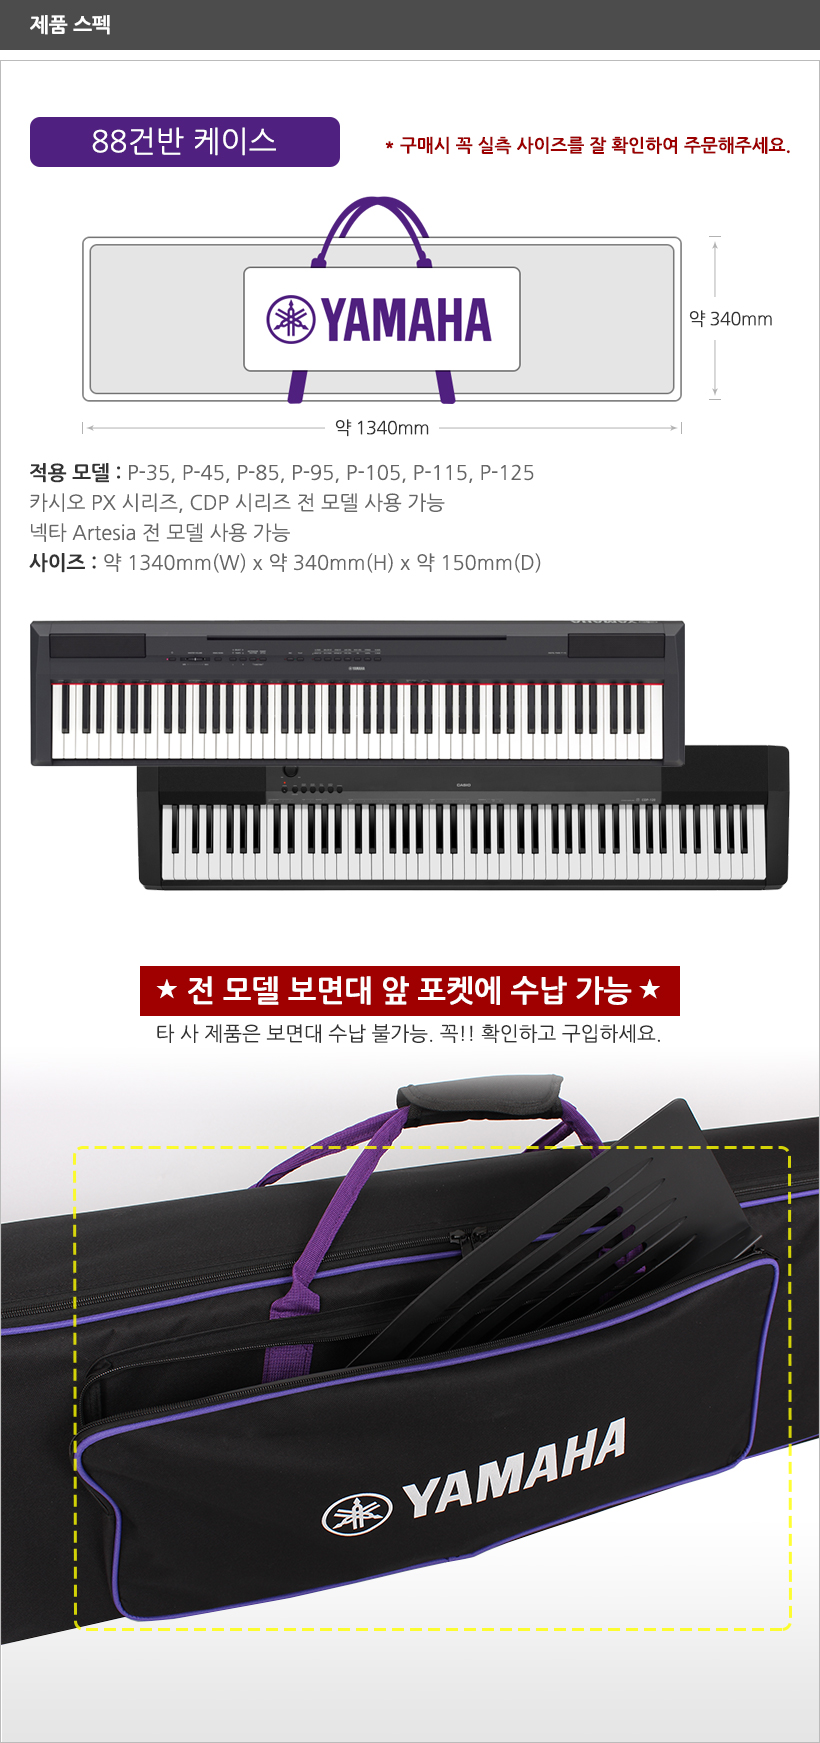 Yamaha-Keyboard-Case 제품 스펙